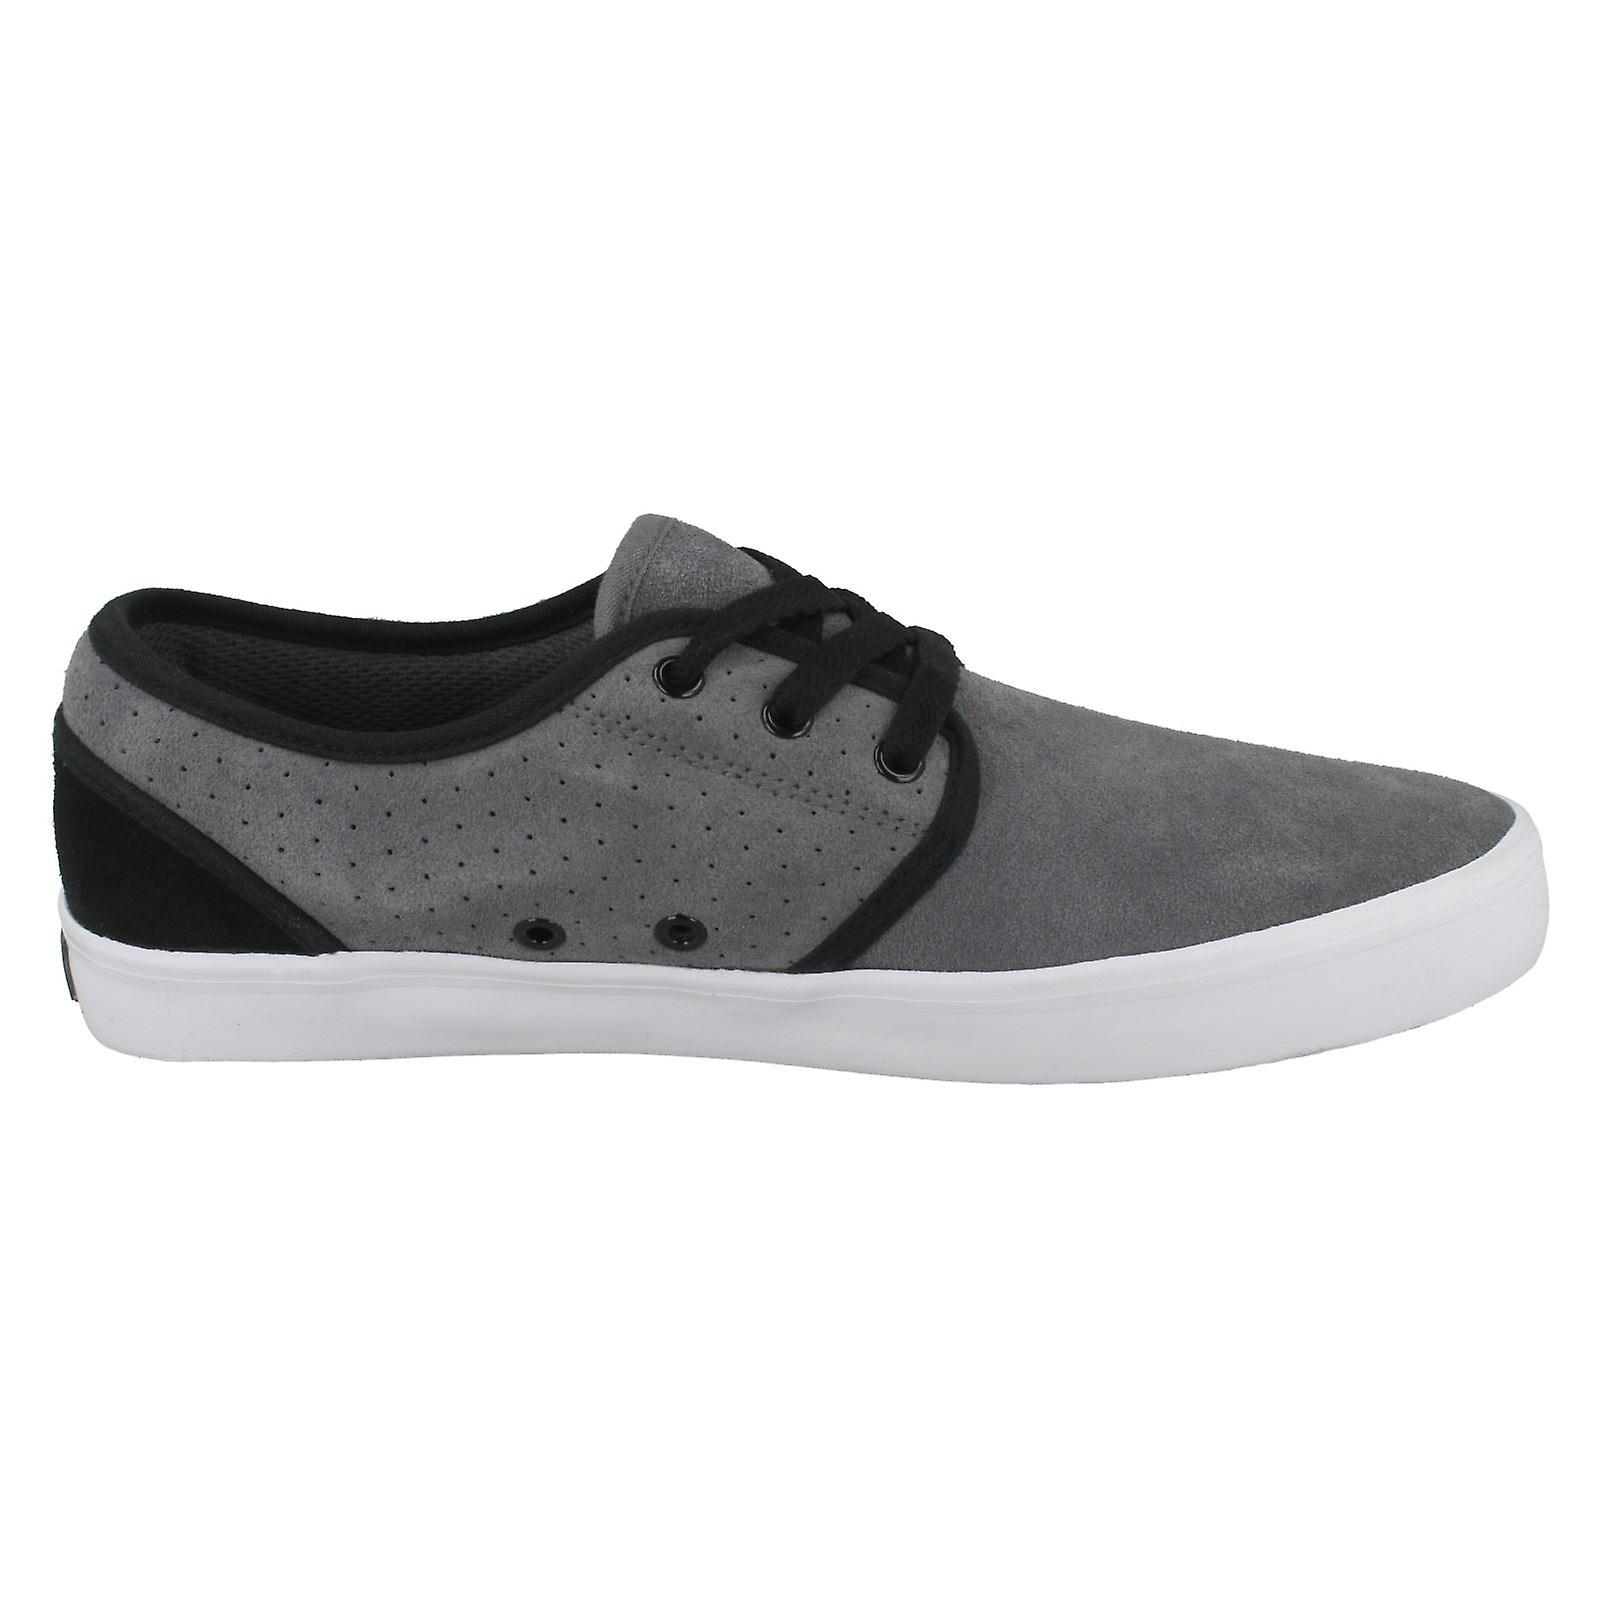 Dark EU Size 6 Vox Mens UK Grey White Inc 40 Size Suede 7 Size Casual Slacker Footwear Black US Shoes q1FBY6